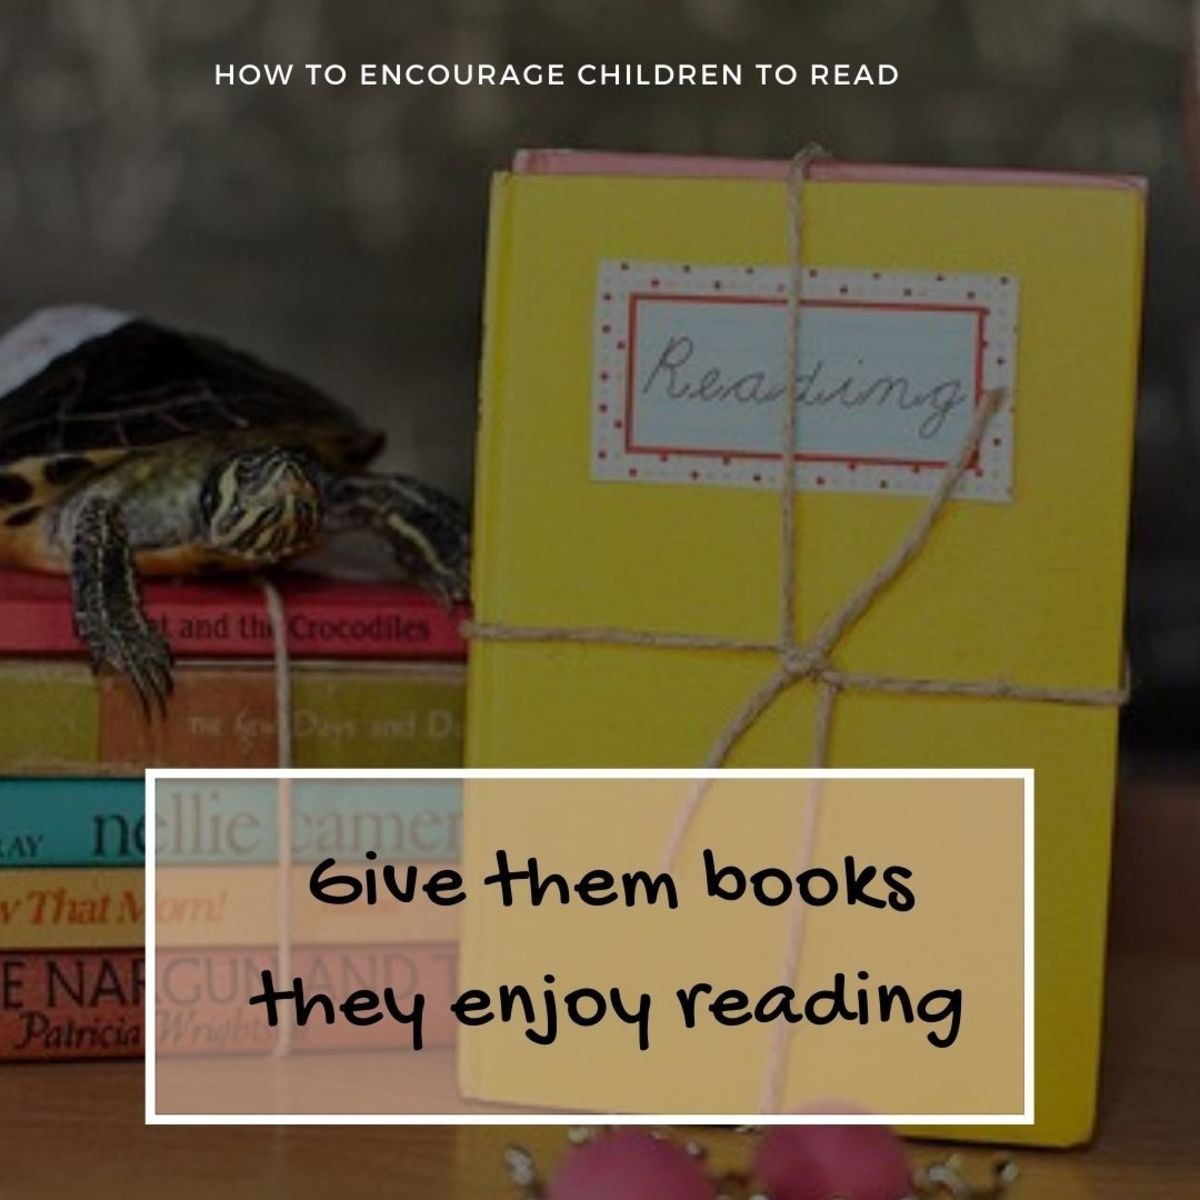 Encourage children to read by giving books they enjoy reading